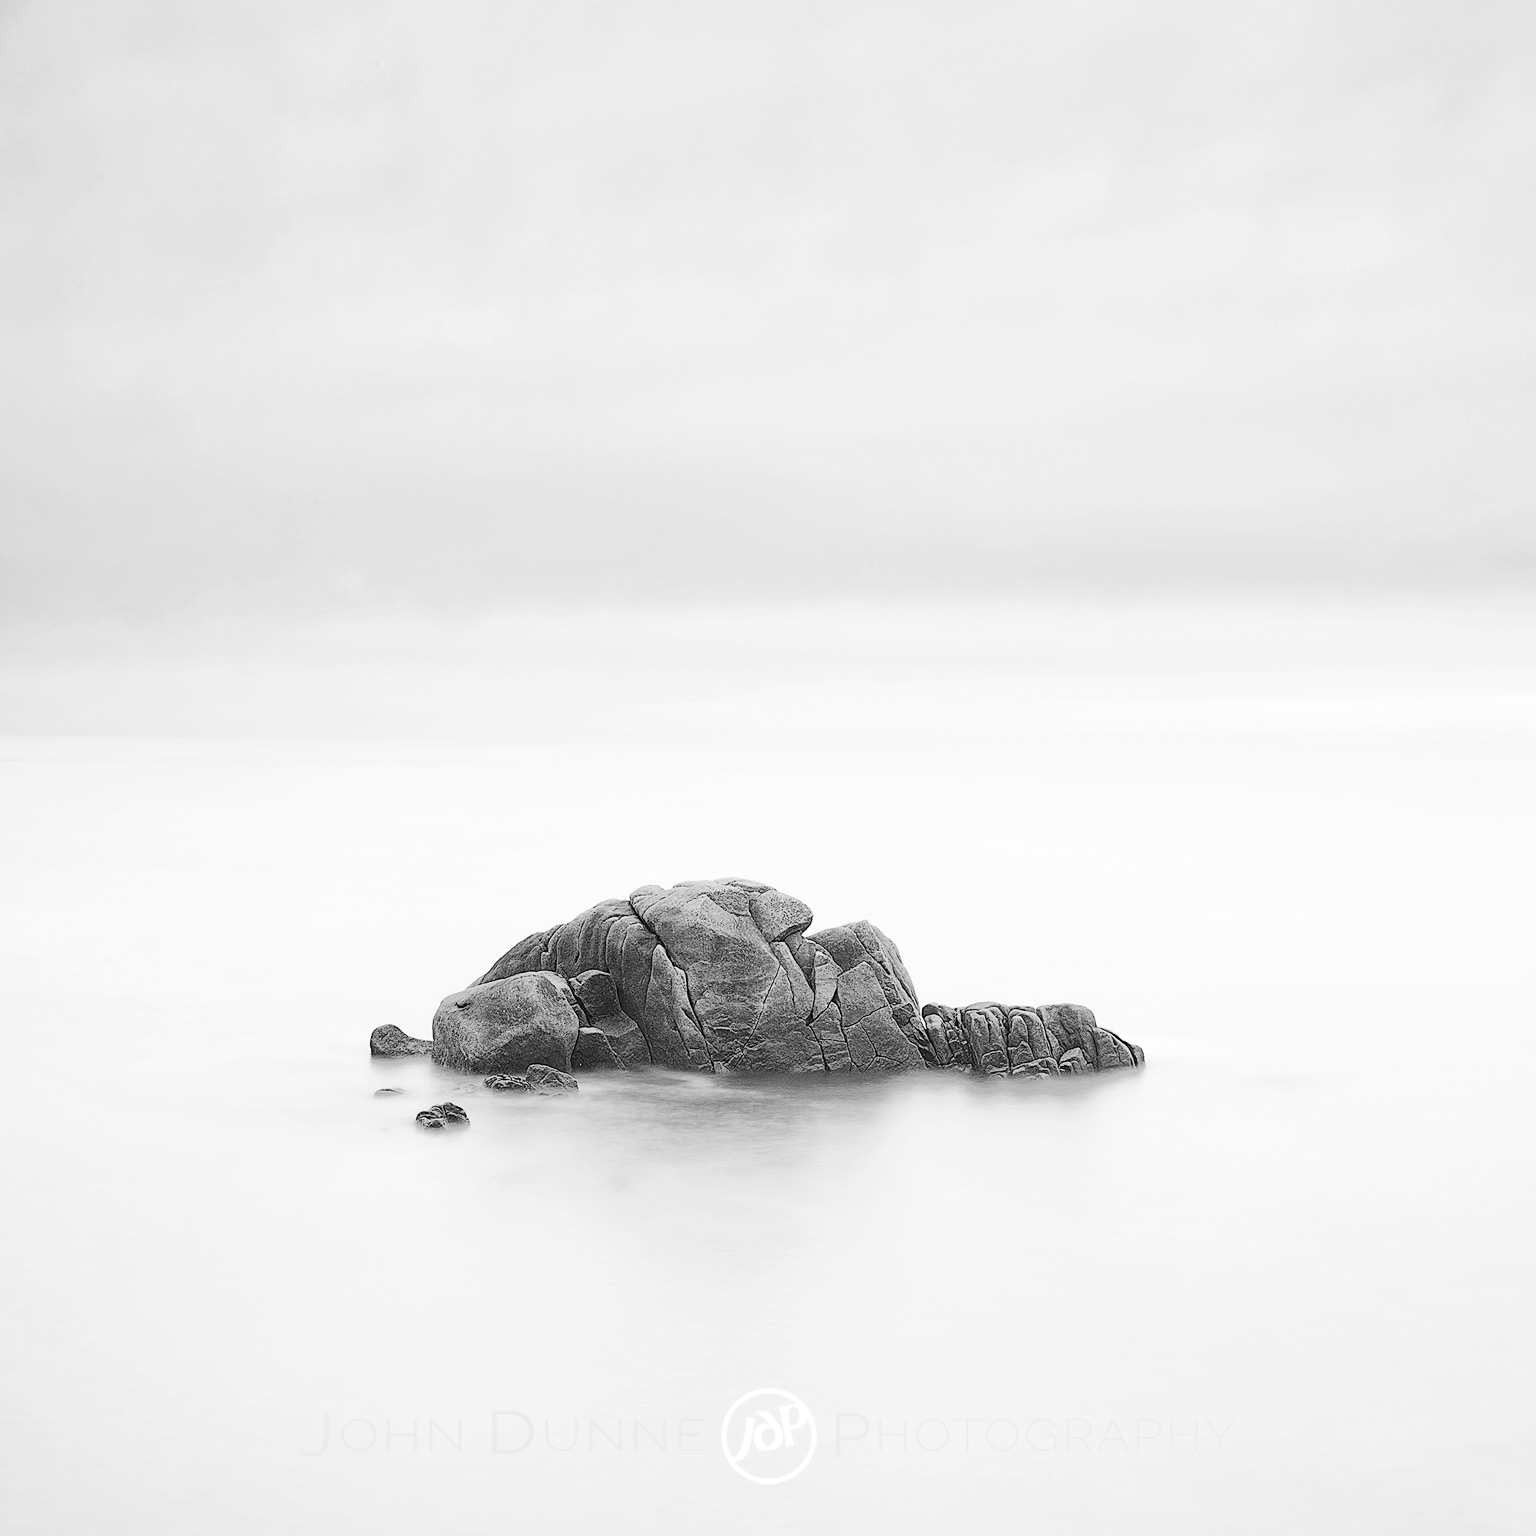 A Lonely Sentinel by John Dunne.